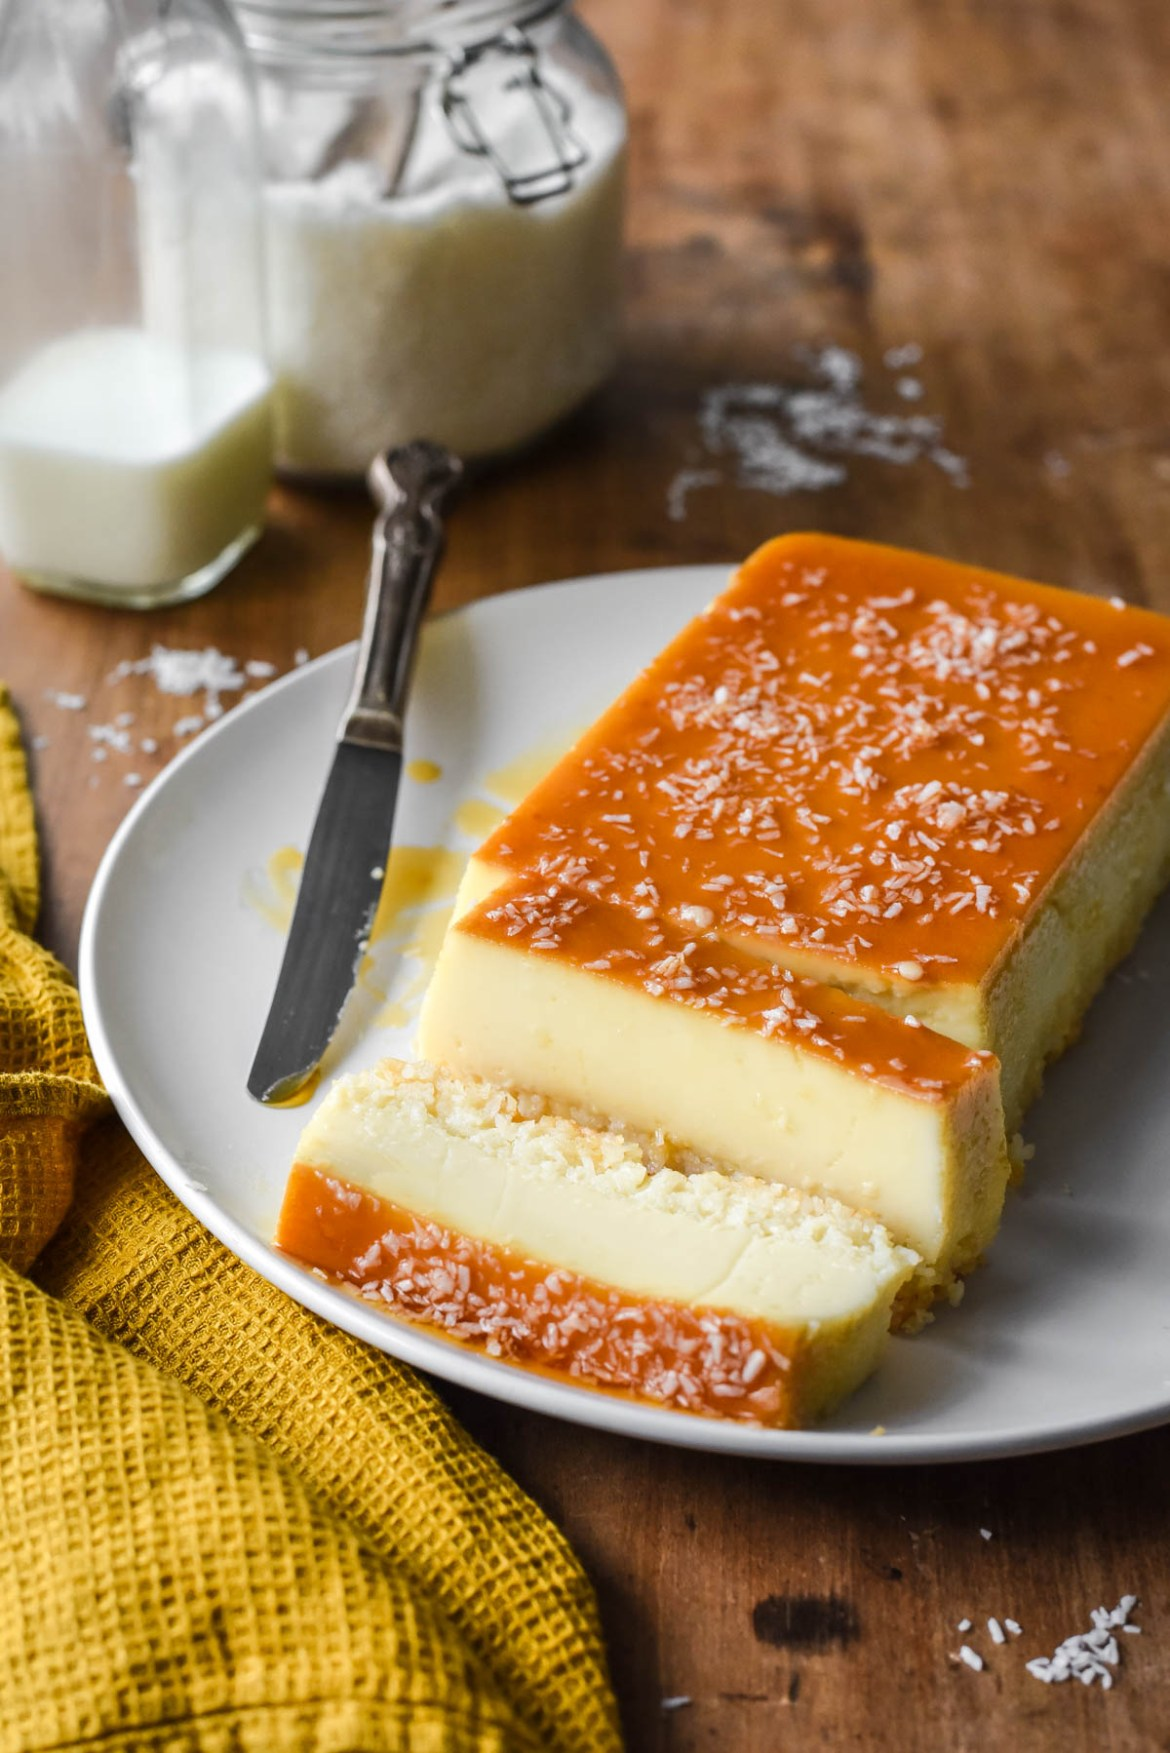 French Antilles Coconut Flan (Flan Coco)